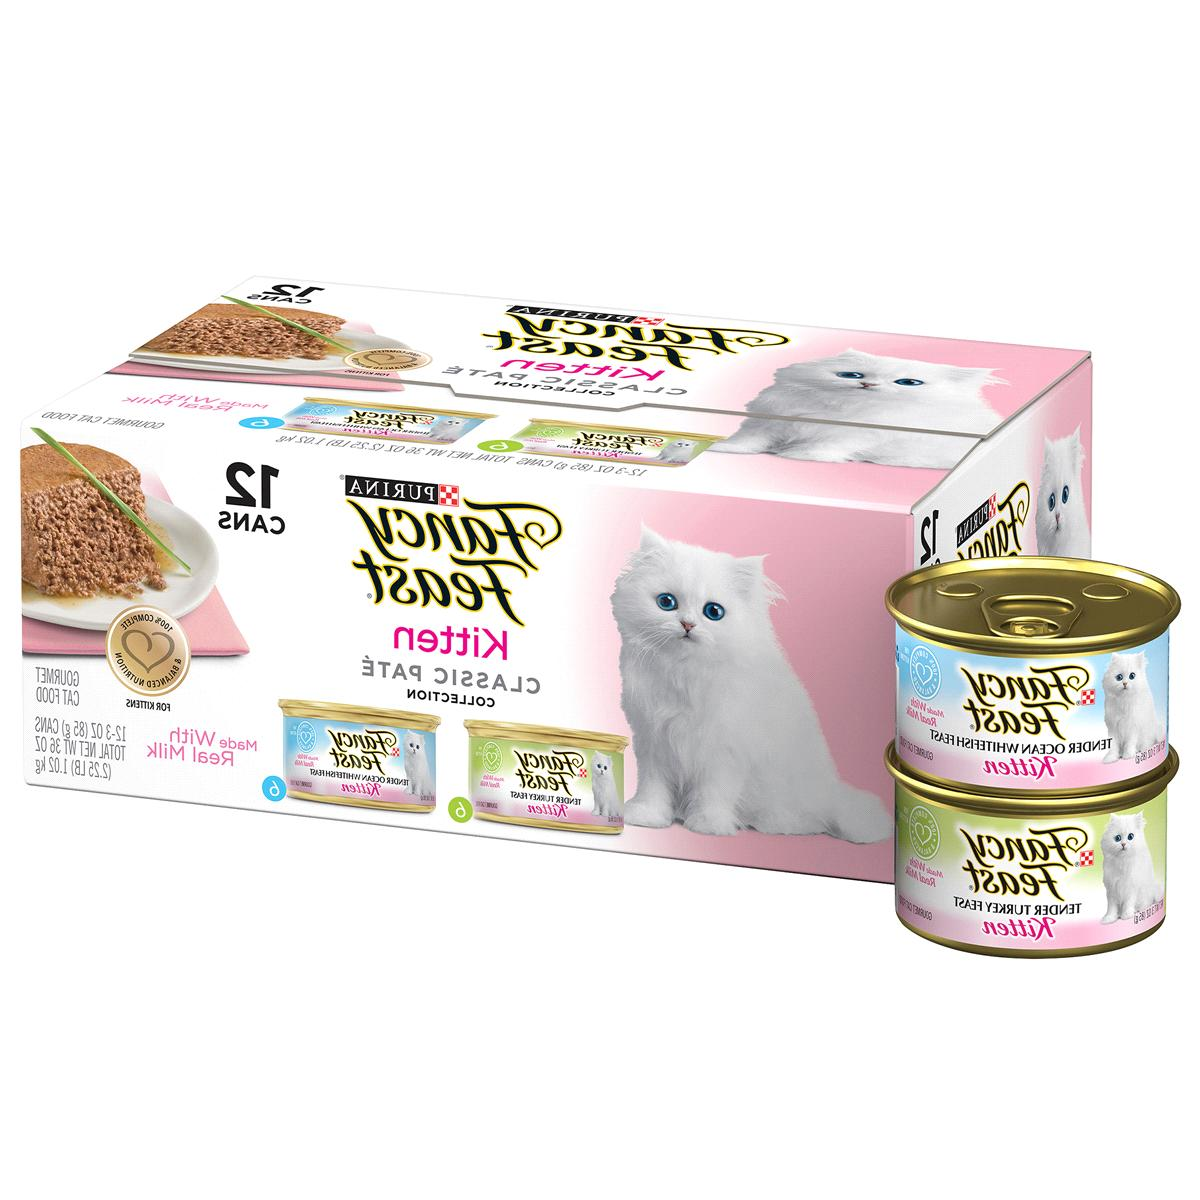 fancy feast kitten classic pate collection cat